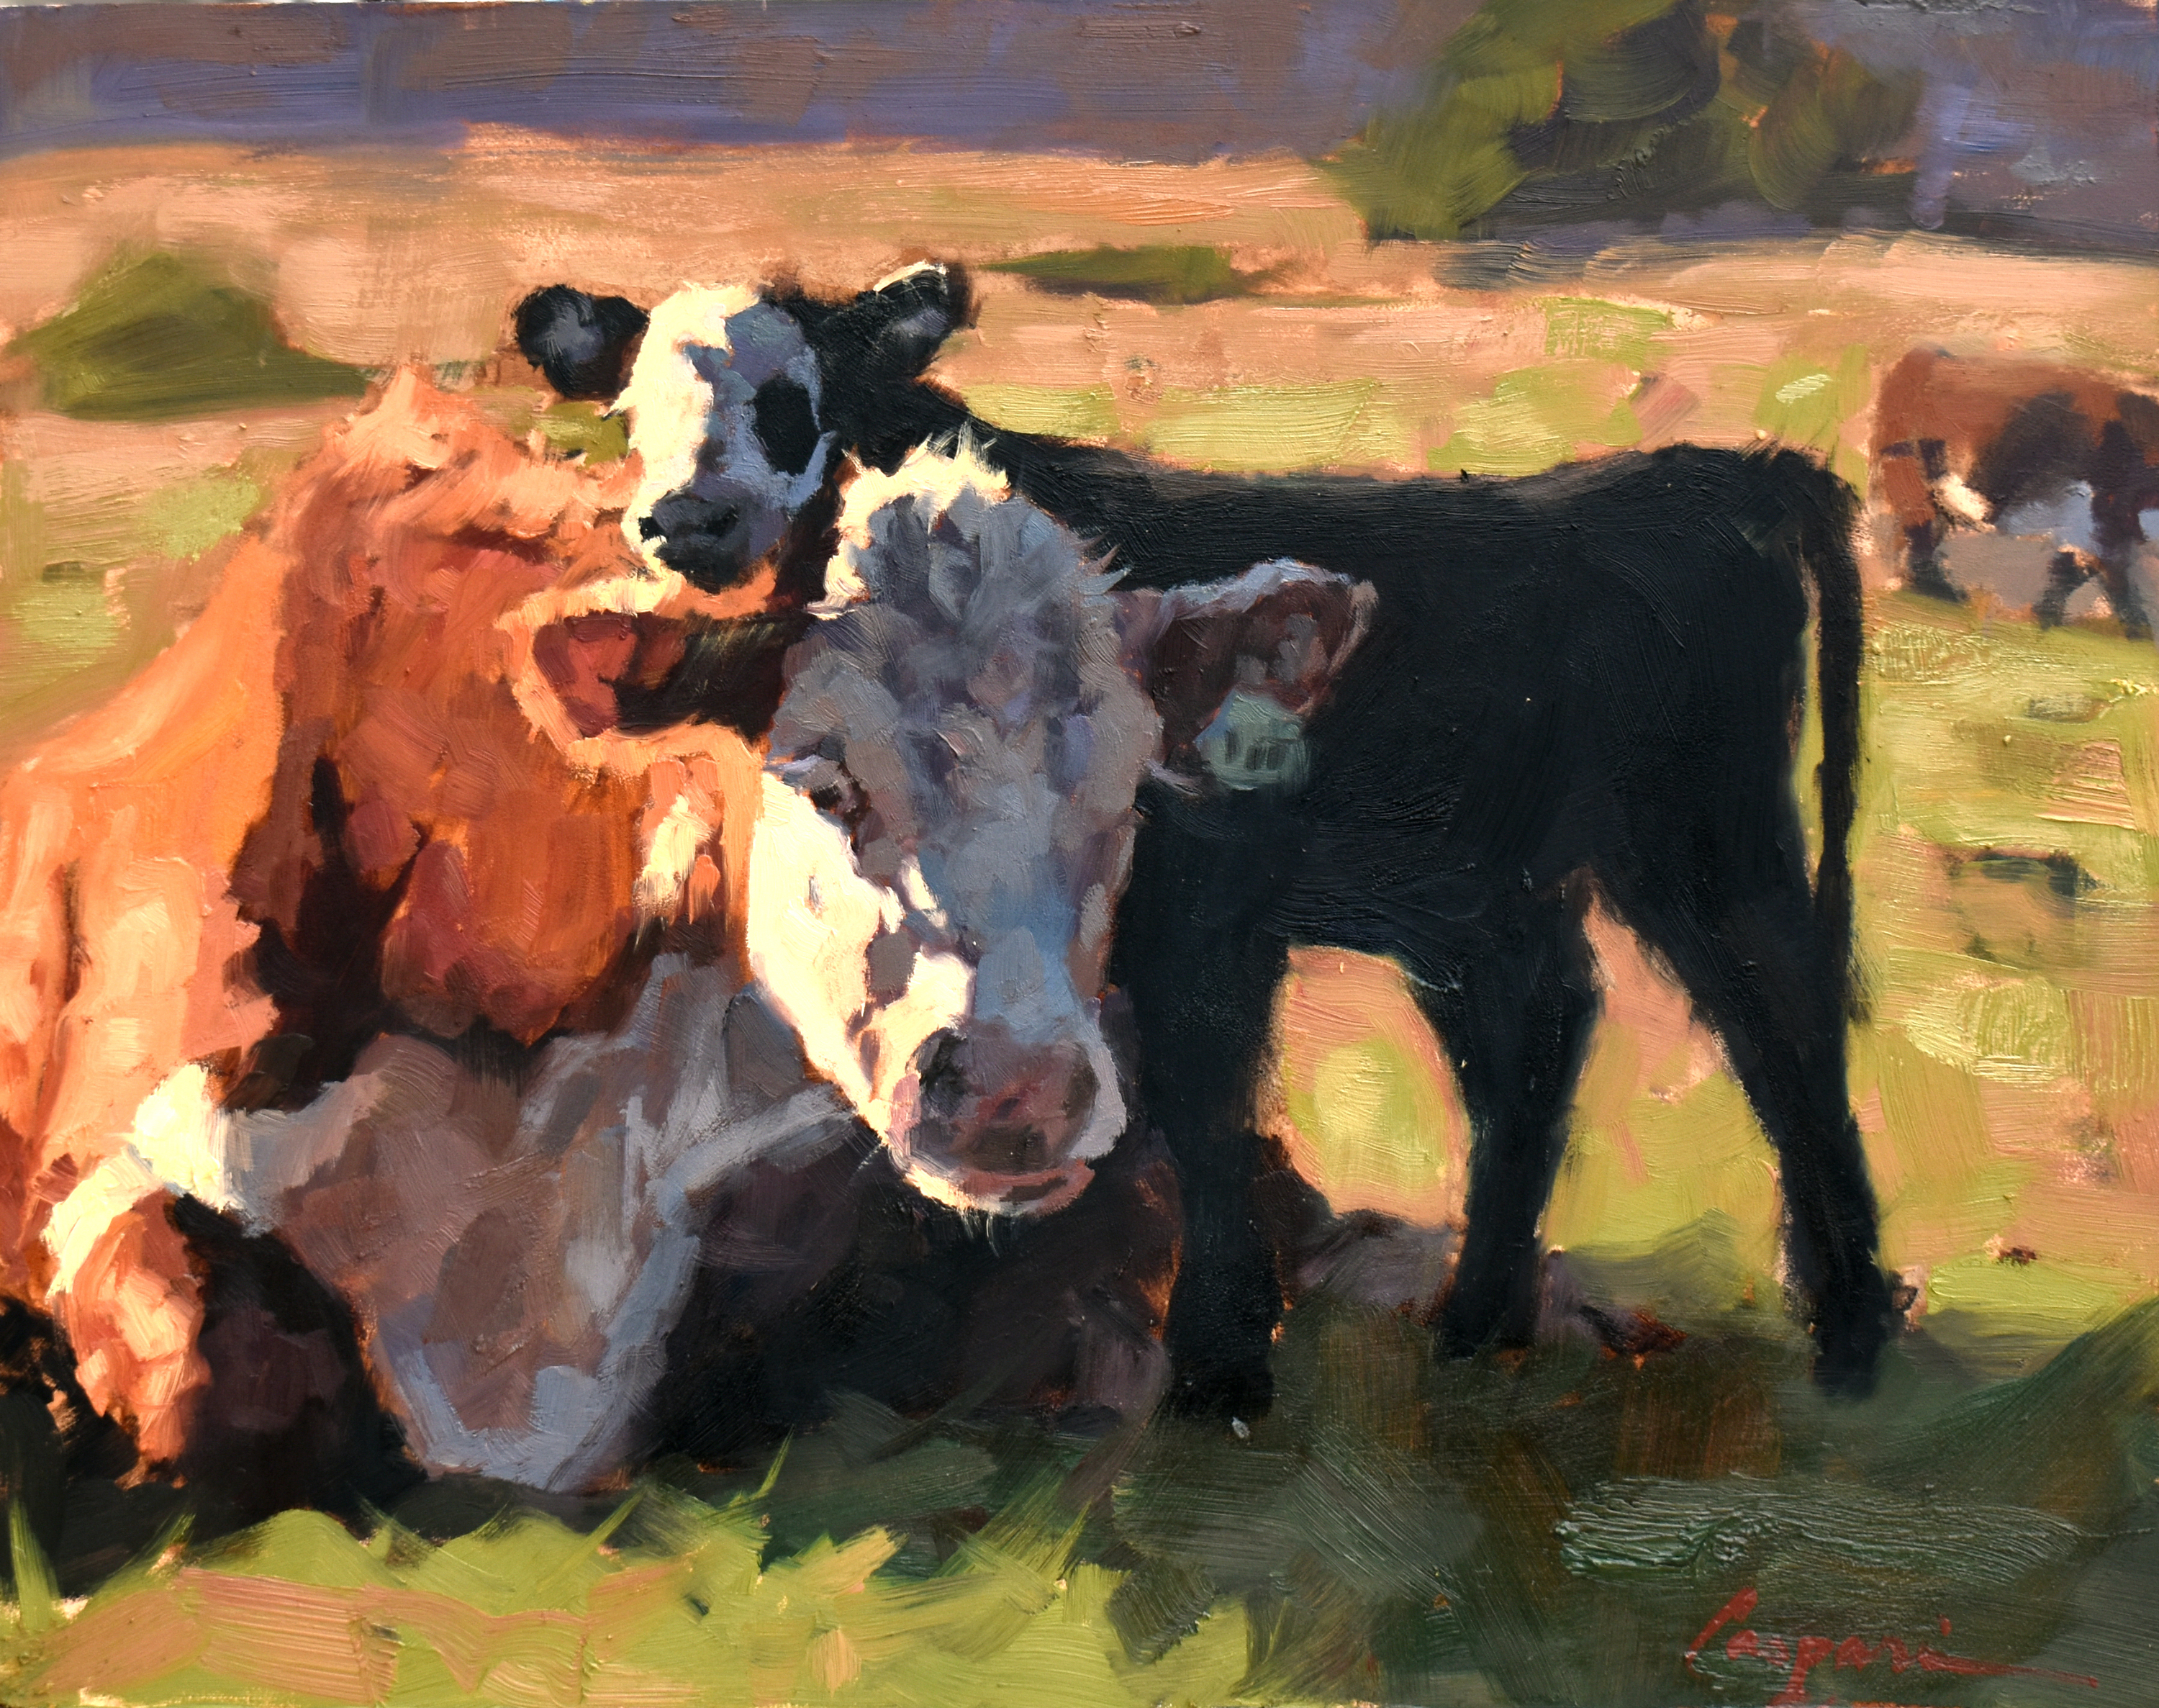 Cow and calf 11x14 oil 2020 b8khlo